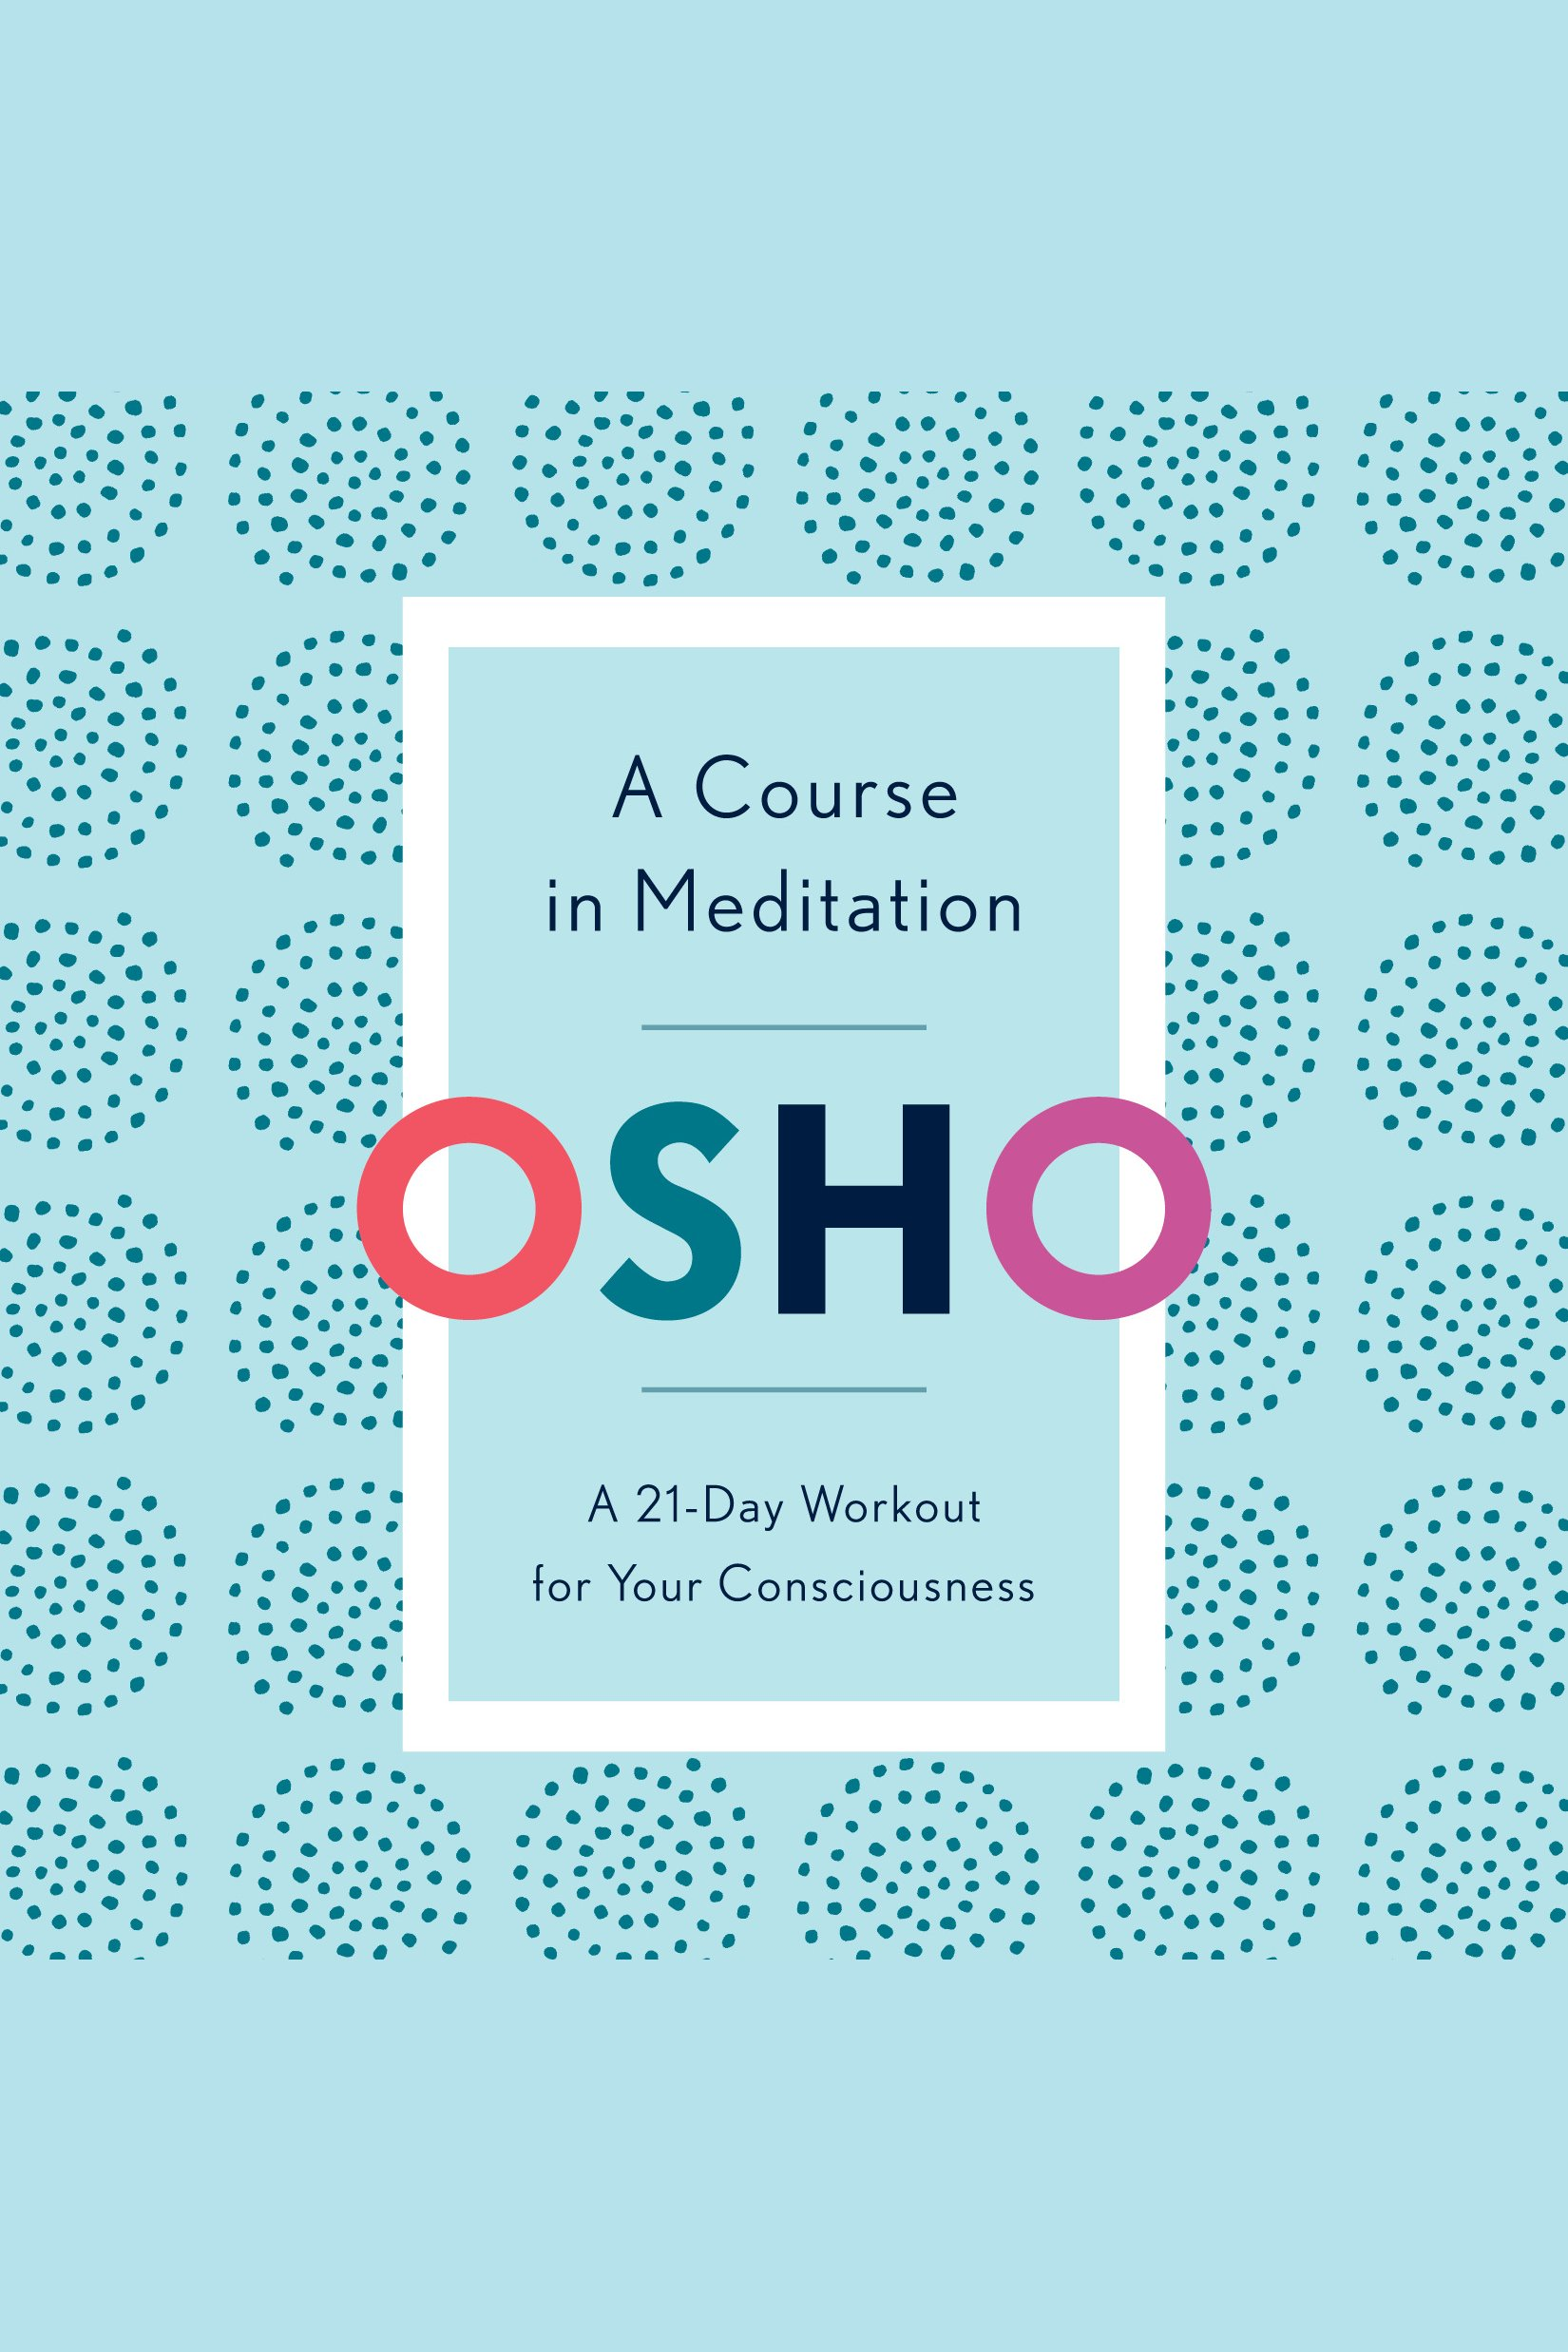 Course in Meditation, A A 21-Day Workout for Your Consciousness